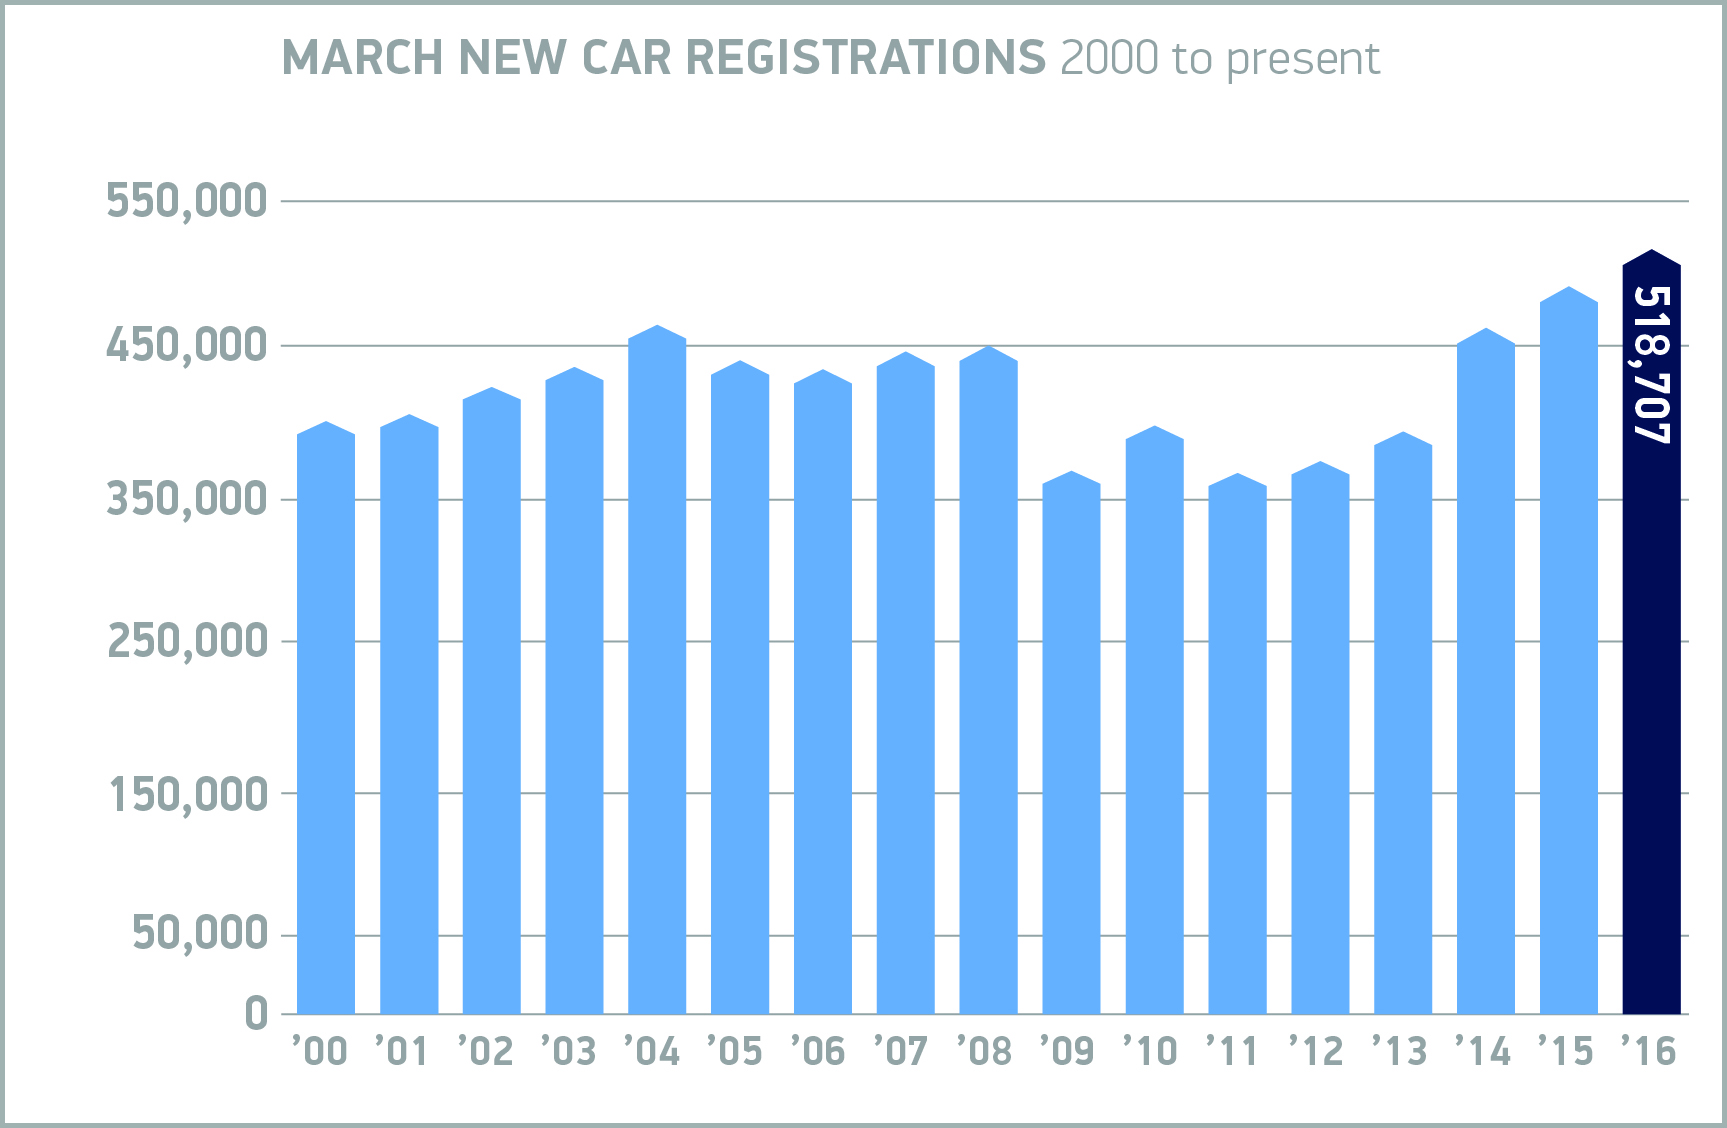 Trackback clients growth outperforms uk market new car registrations rolling nvjuhfo Image collections